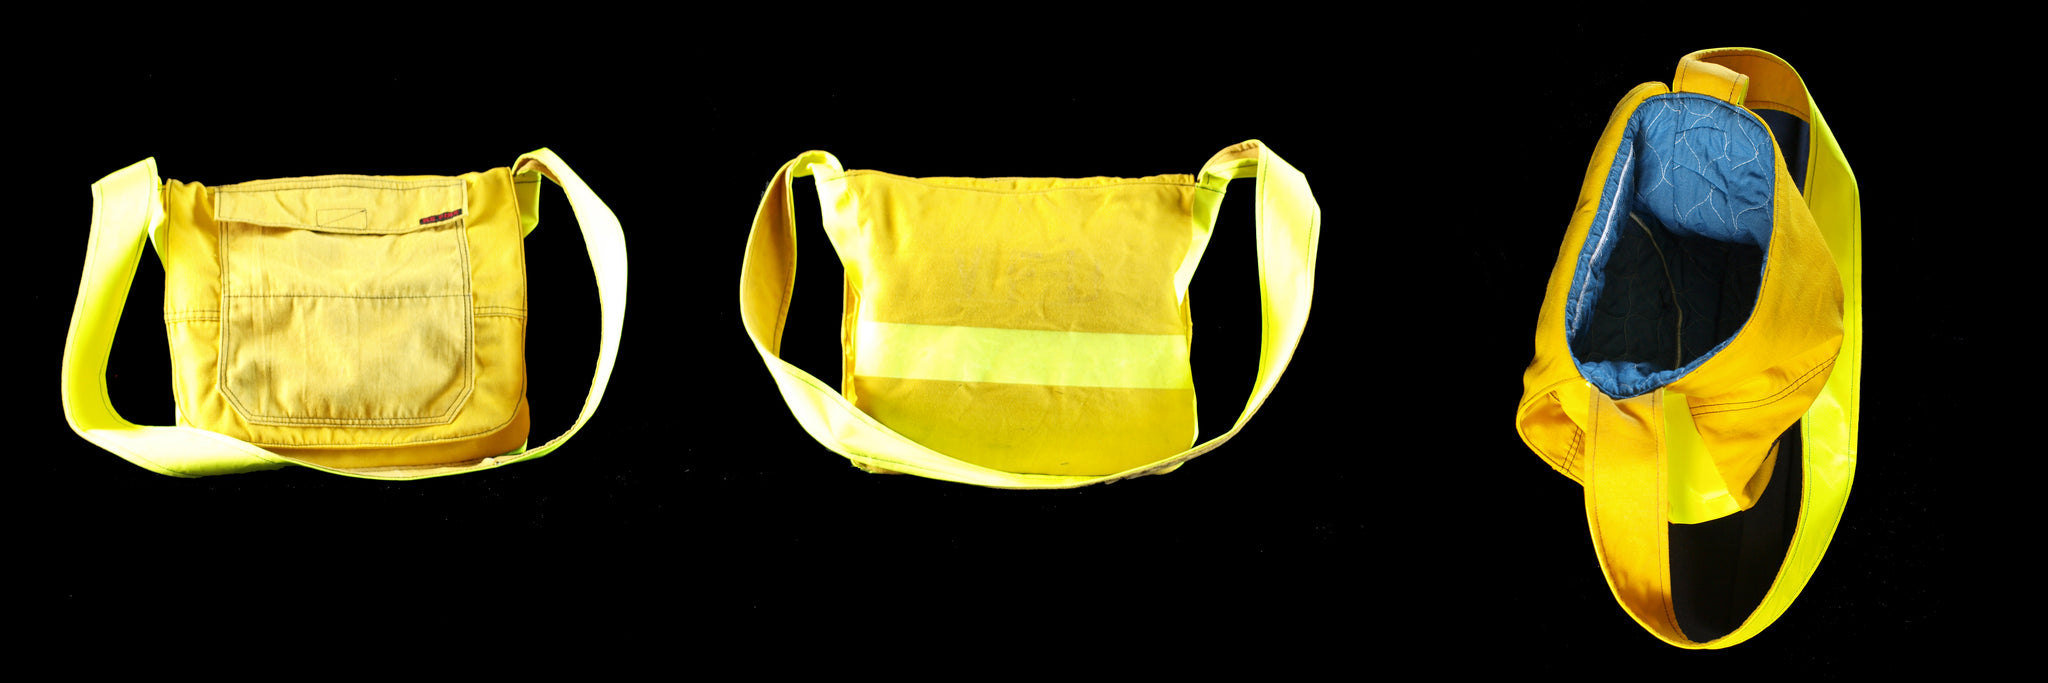 messenger bag, recycled fire turnout gear, yellow